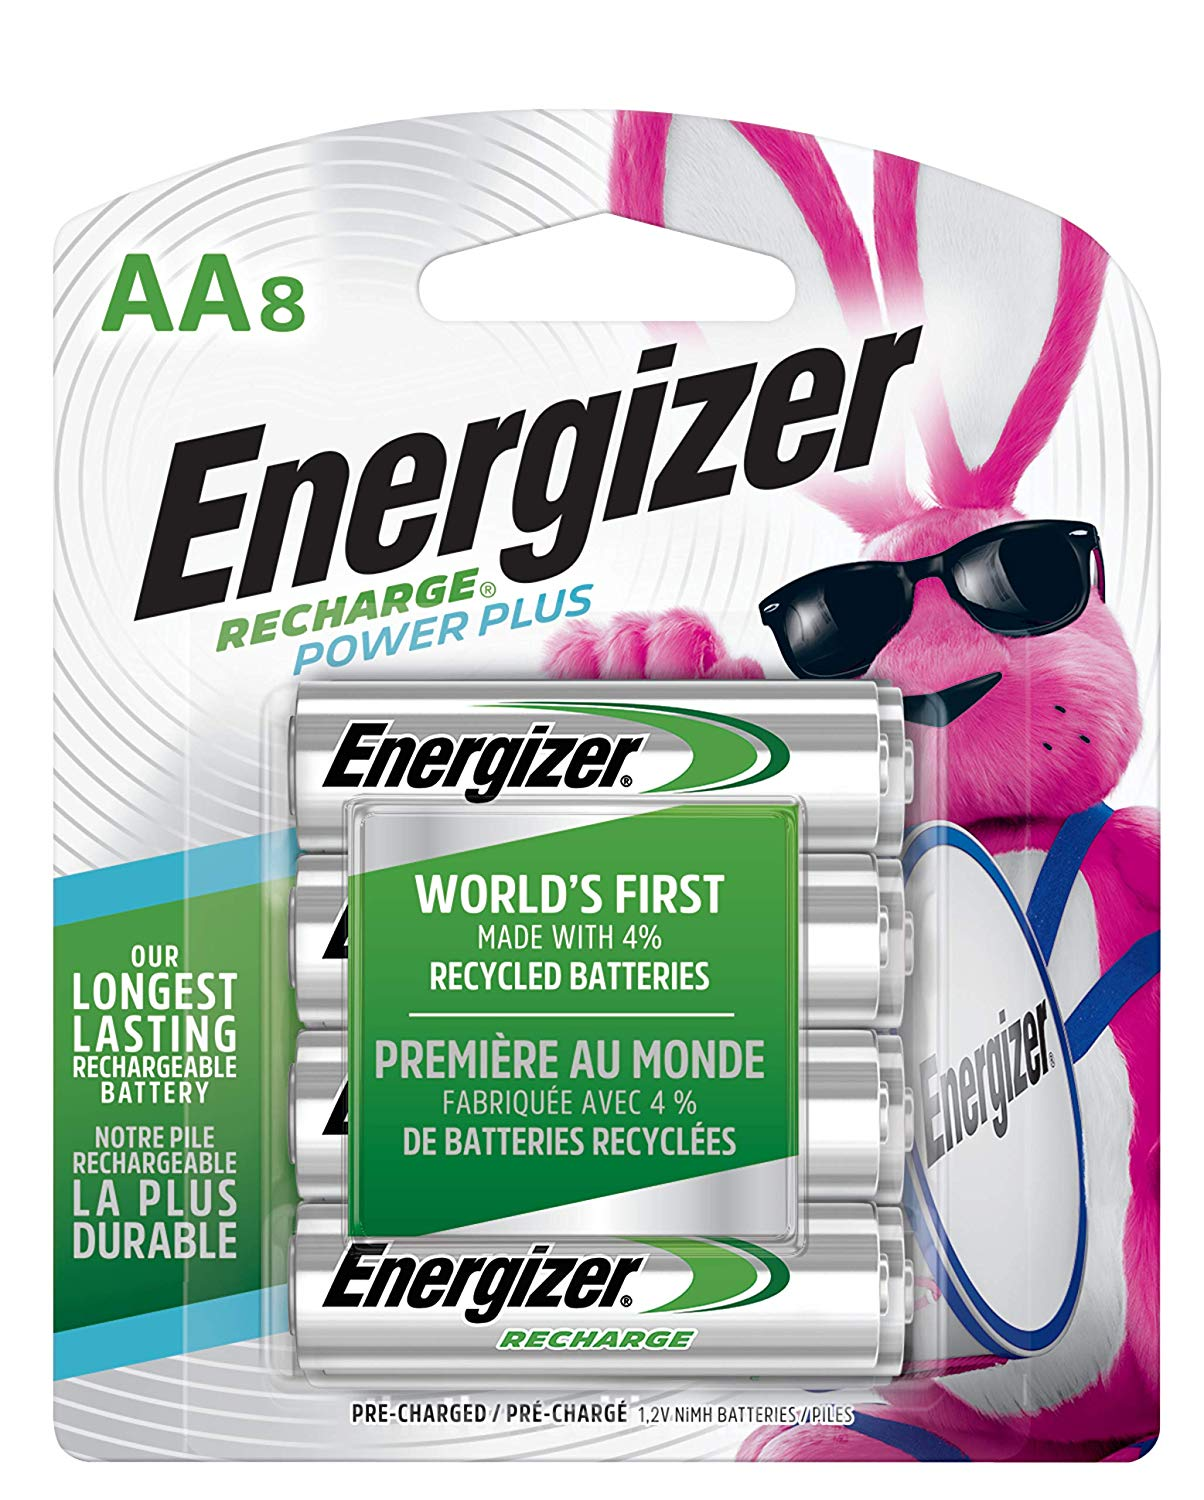 Energizer 2300 mAh Rechargeable AA Batteries